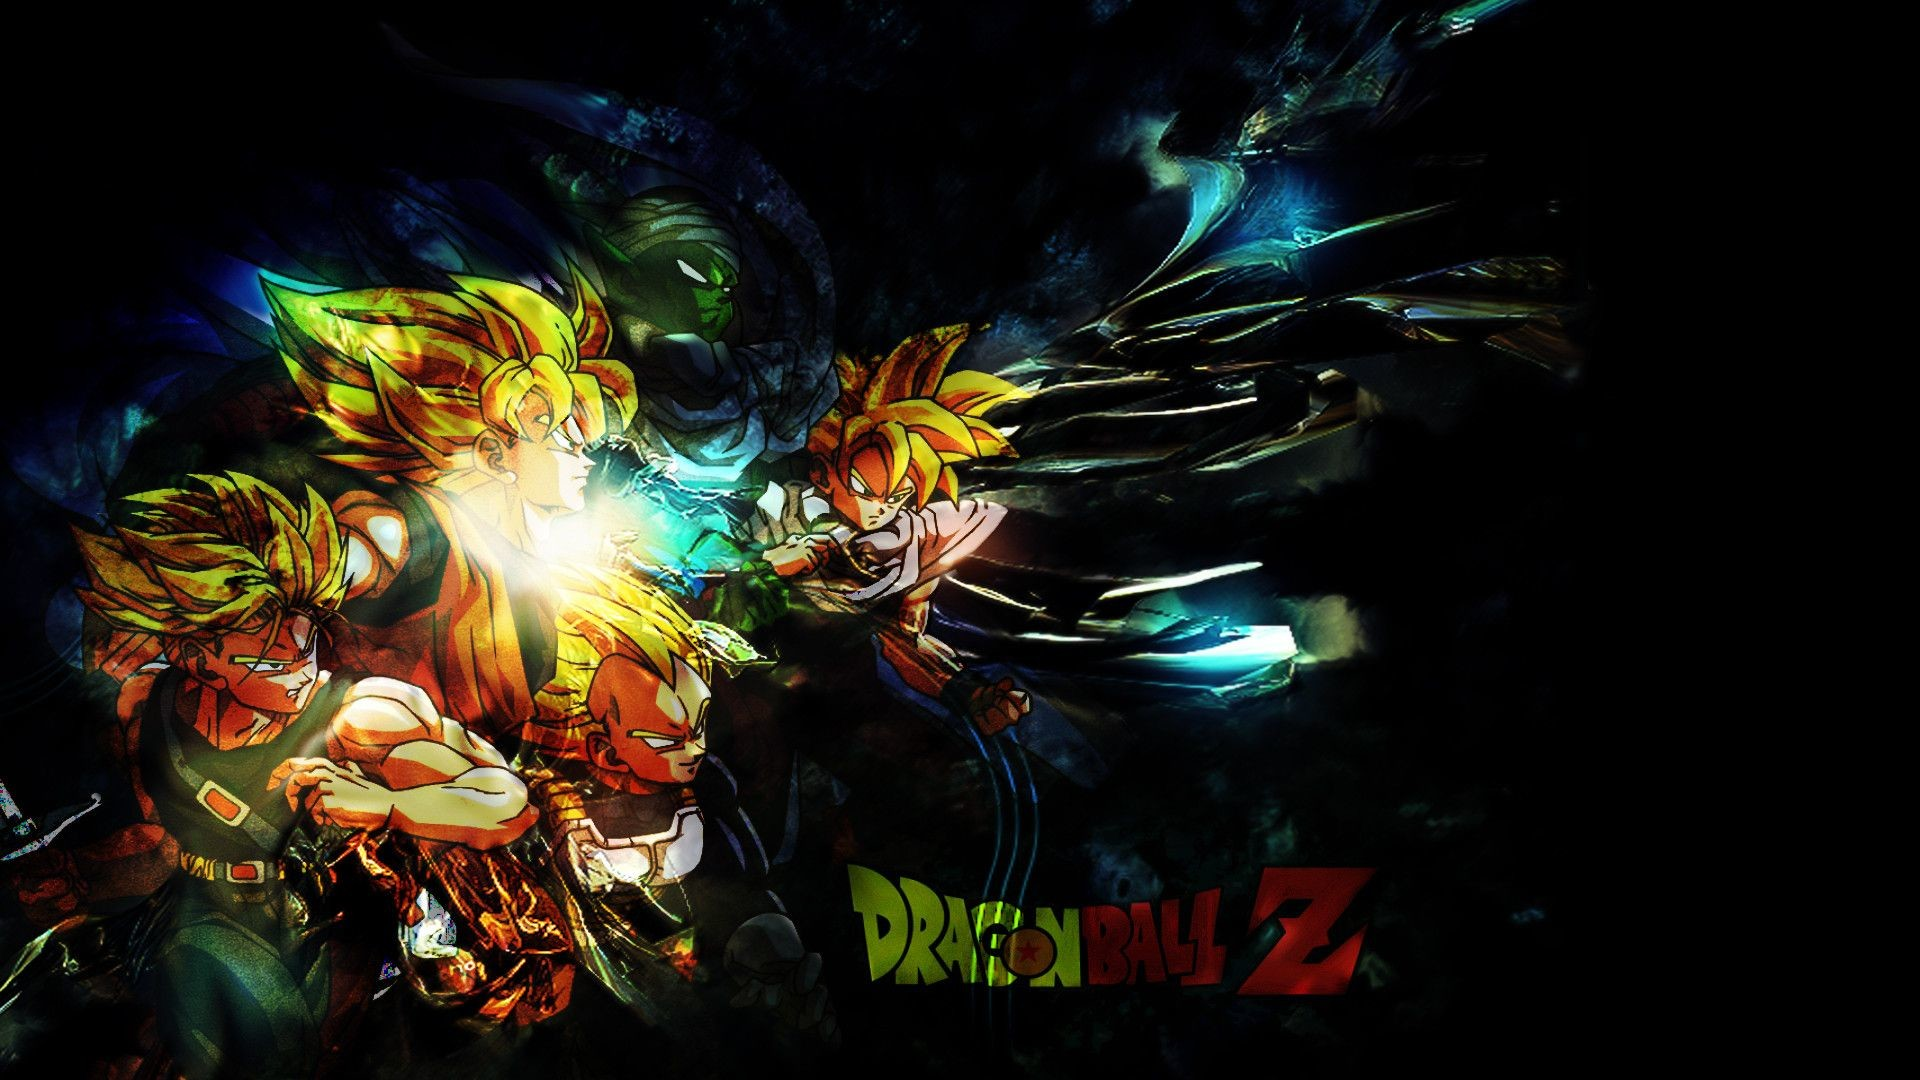 1920x1080 dragon ball z super hd wallpapers #165865